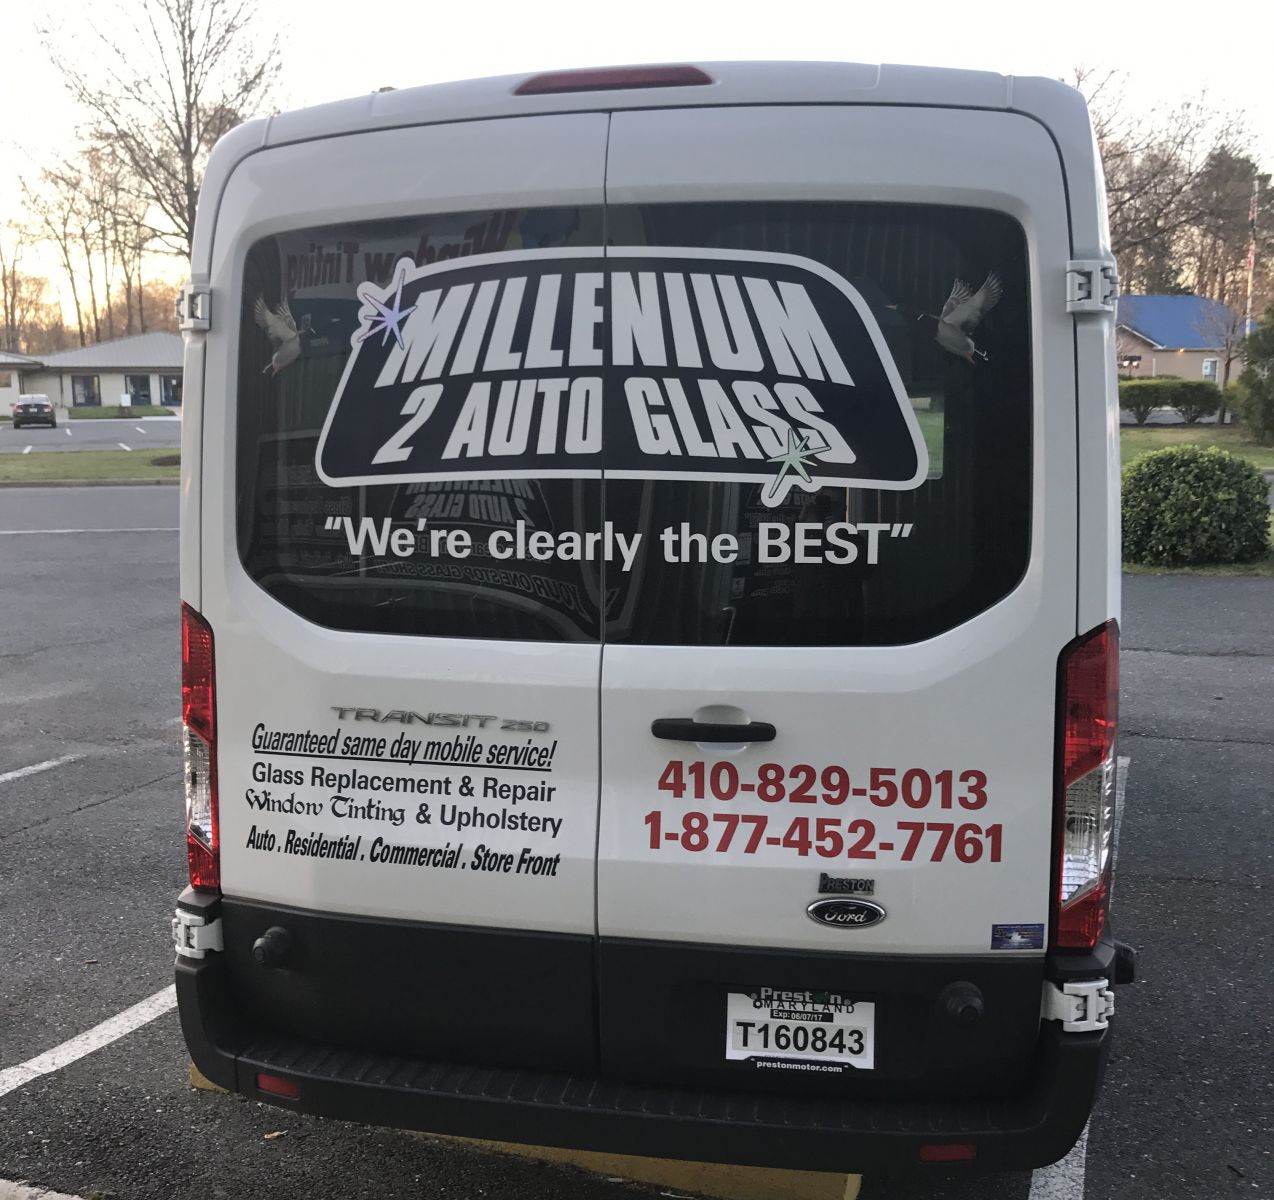 Auto Glass Quote Millenium 2 Auto Glass Quote Request